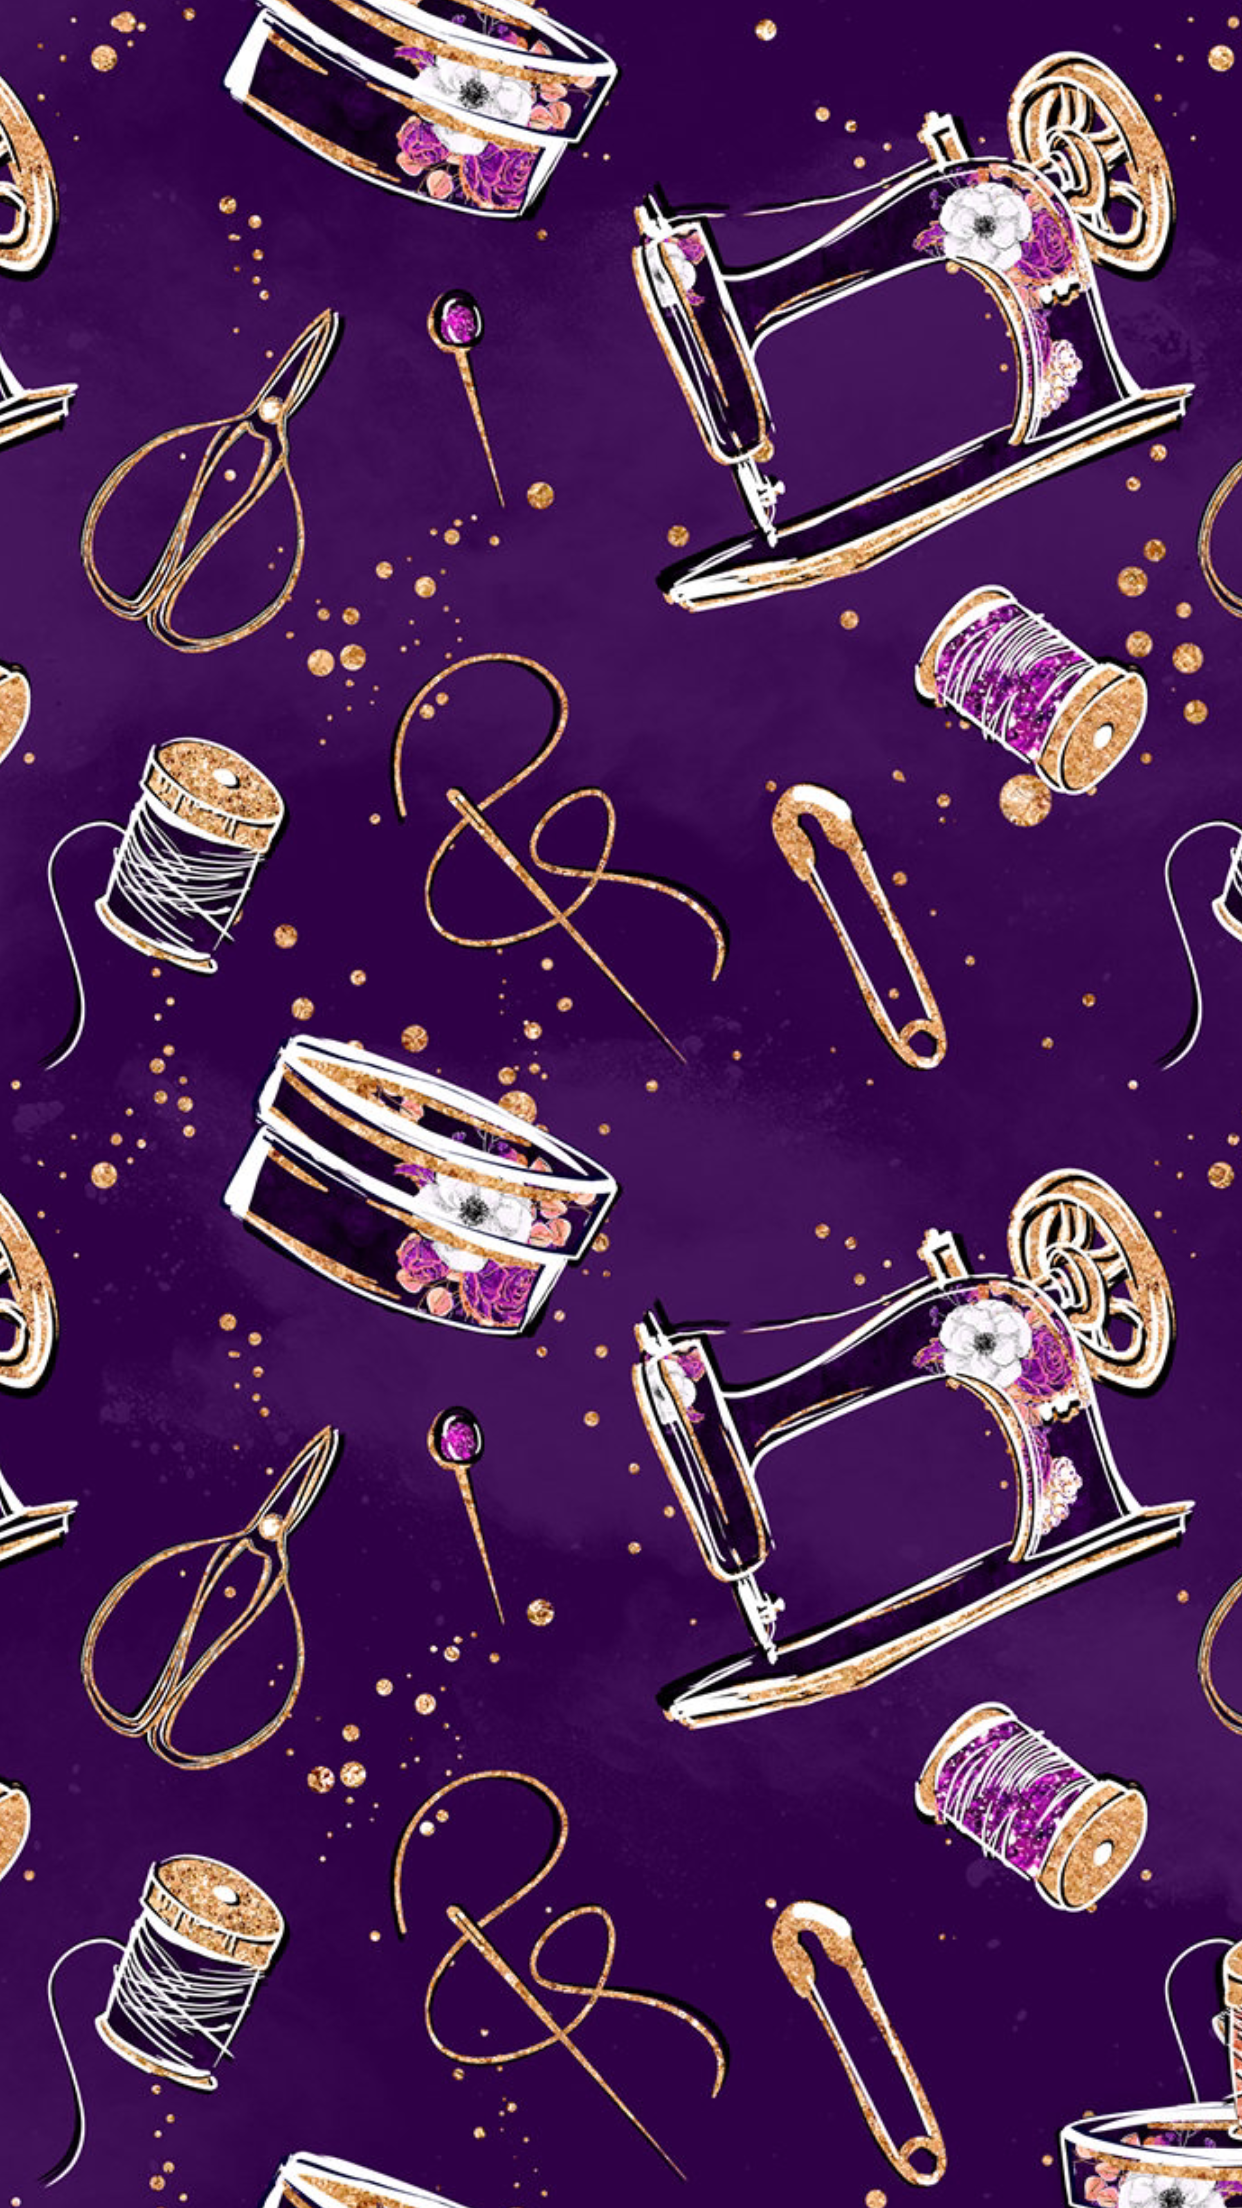 Go Wallpapers In 2020 Sewing Art Sewing Logo Wallpaper Backgrounds